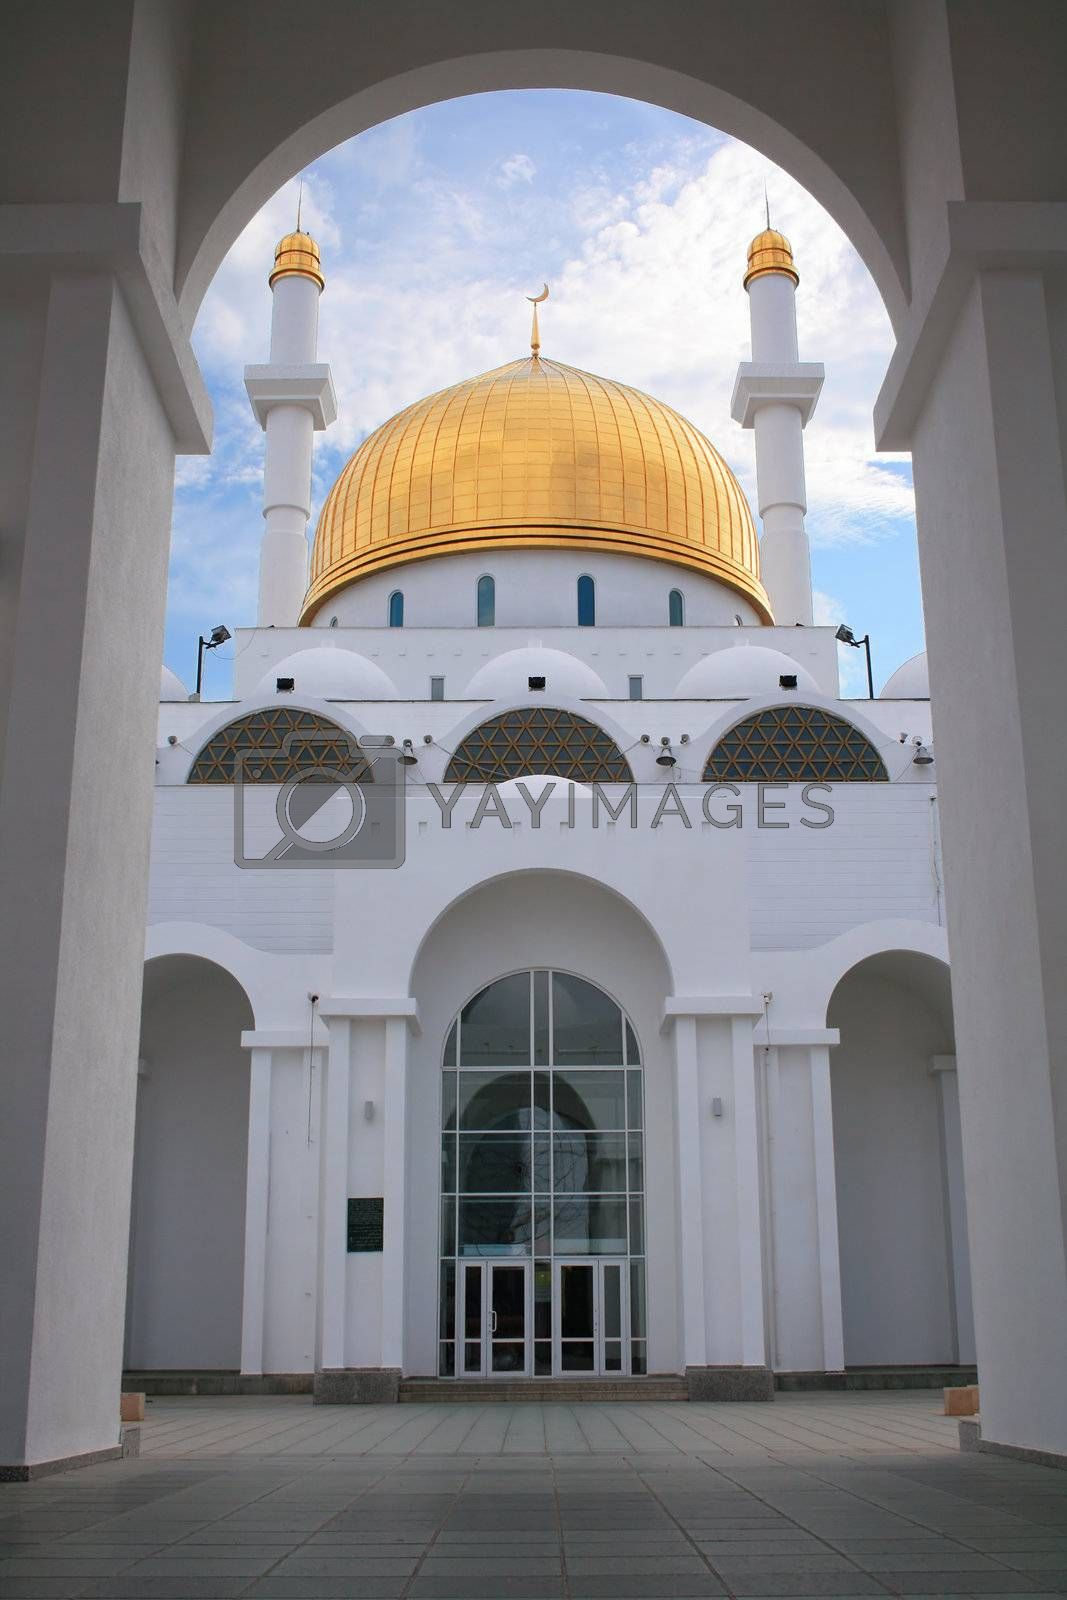 Royalty free image of Mosque entrance by whiterabbit